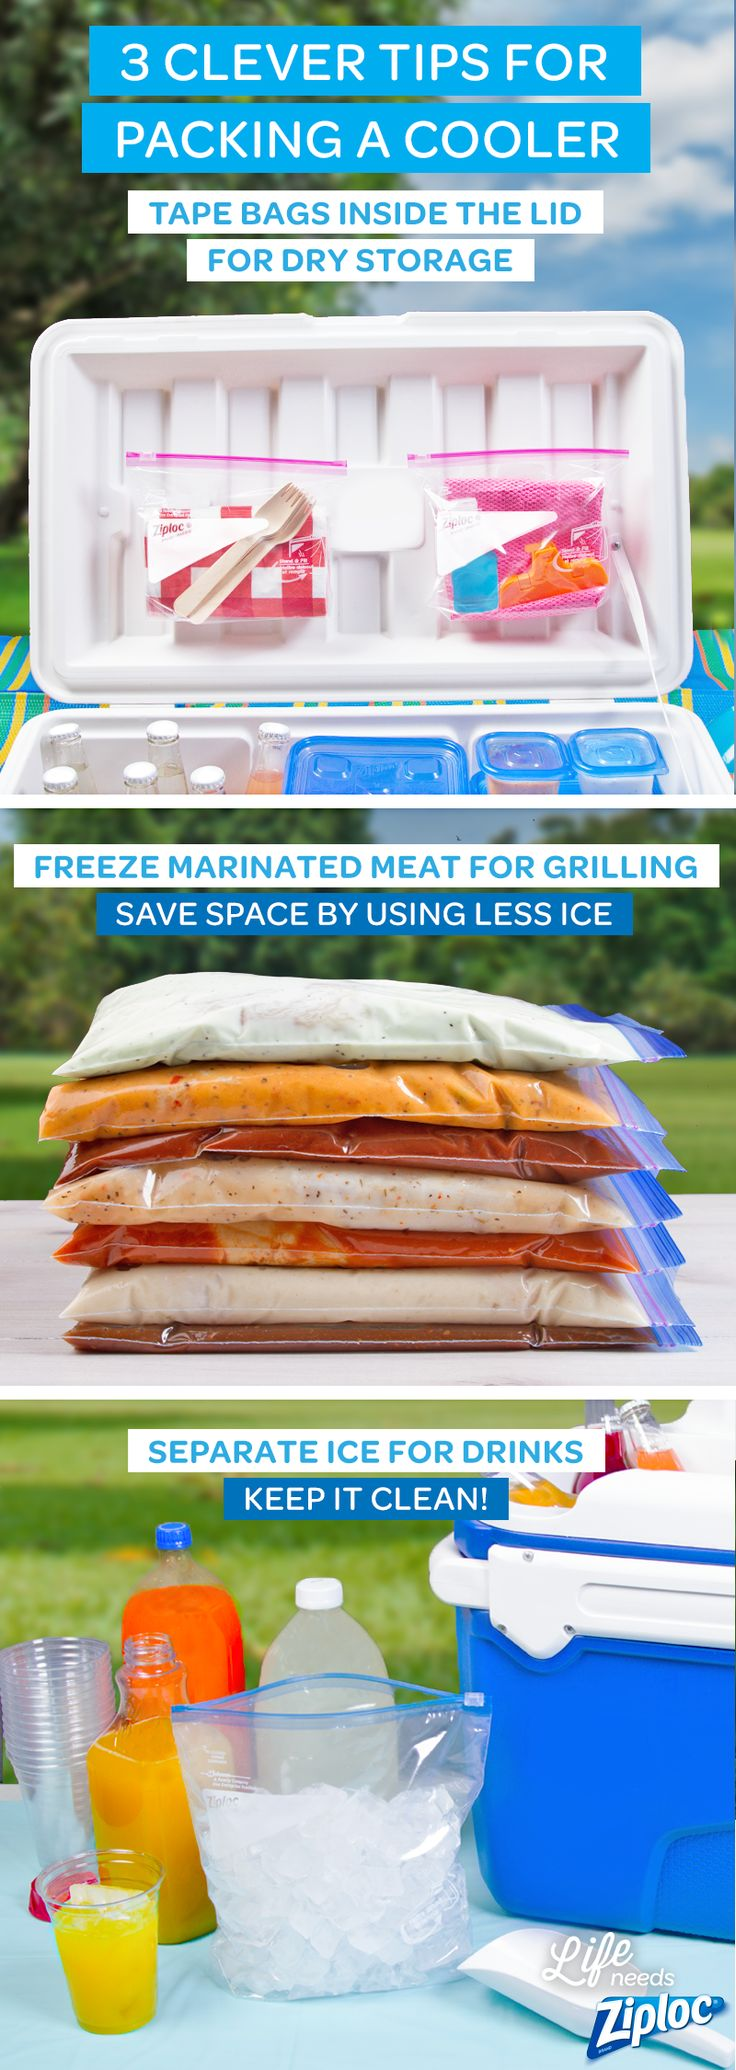 Packing a cooler can be a puzzle. Use these tips, and a few Ziploc® bags, to get ready for your next picnic, road trip, camping vacation, beach trip, summer BBQ, Memorial Day potluck or Fourth of July party. Cooler hacks, or simply smart ideas, are perfect for grilling and also just chilling.